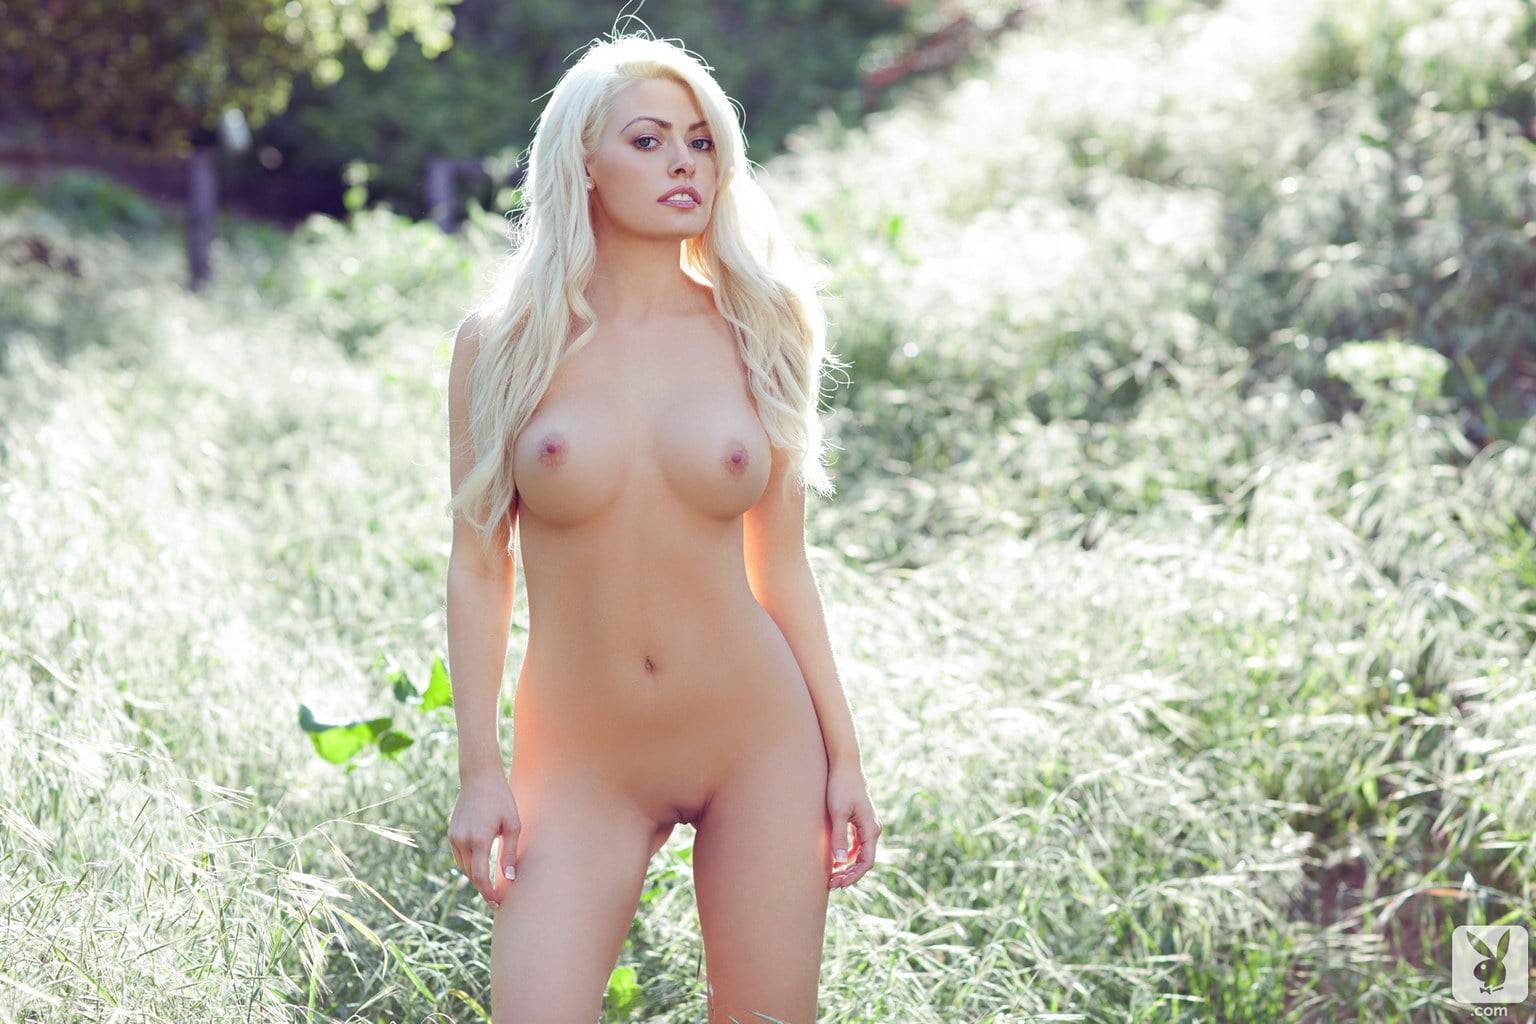 Jayden Marie Blonde Babe Nude Outdoors-9065